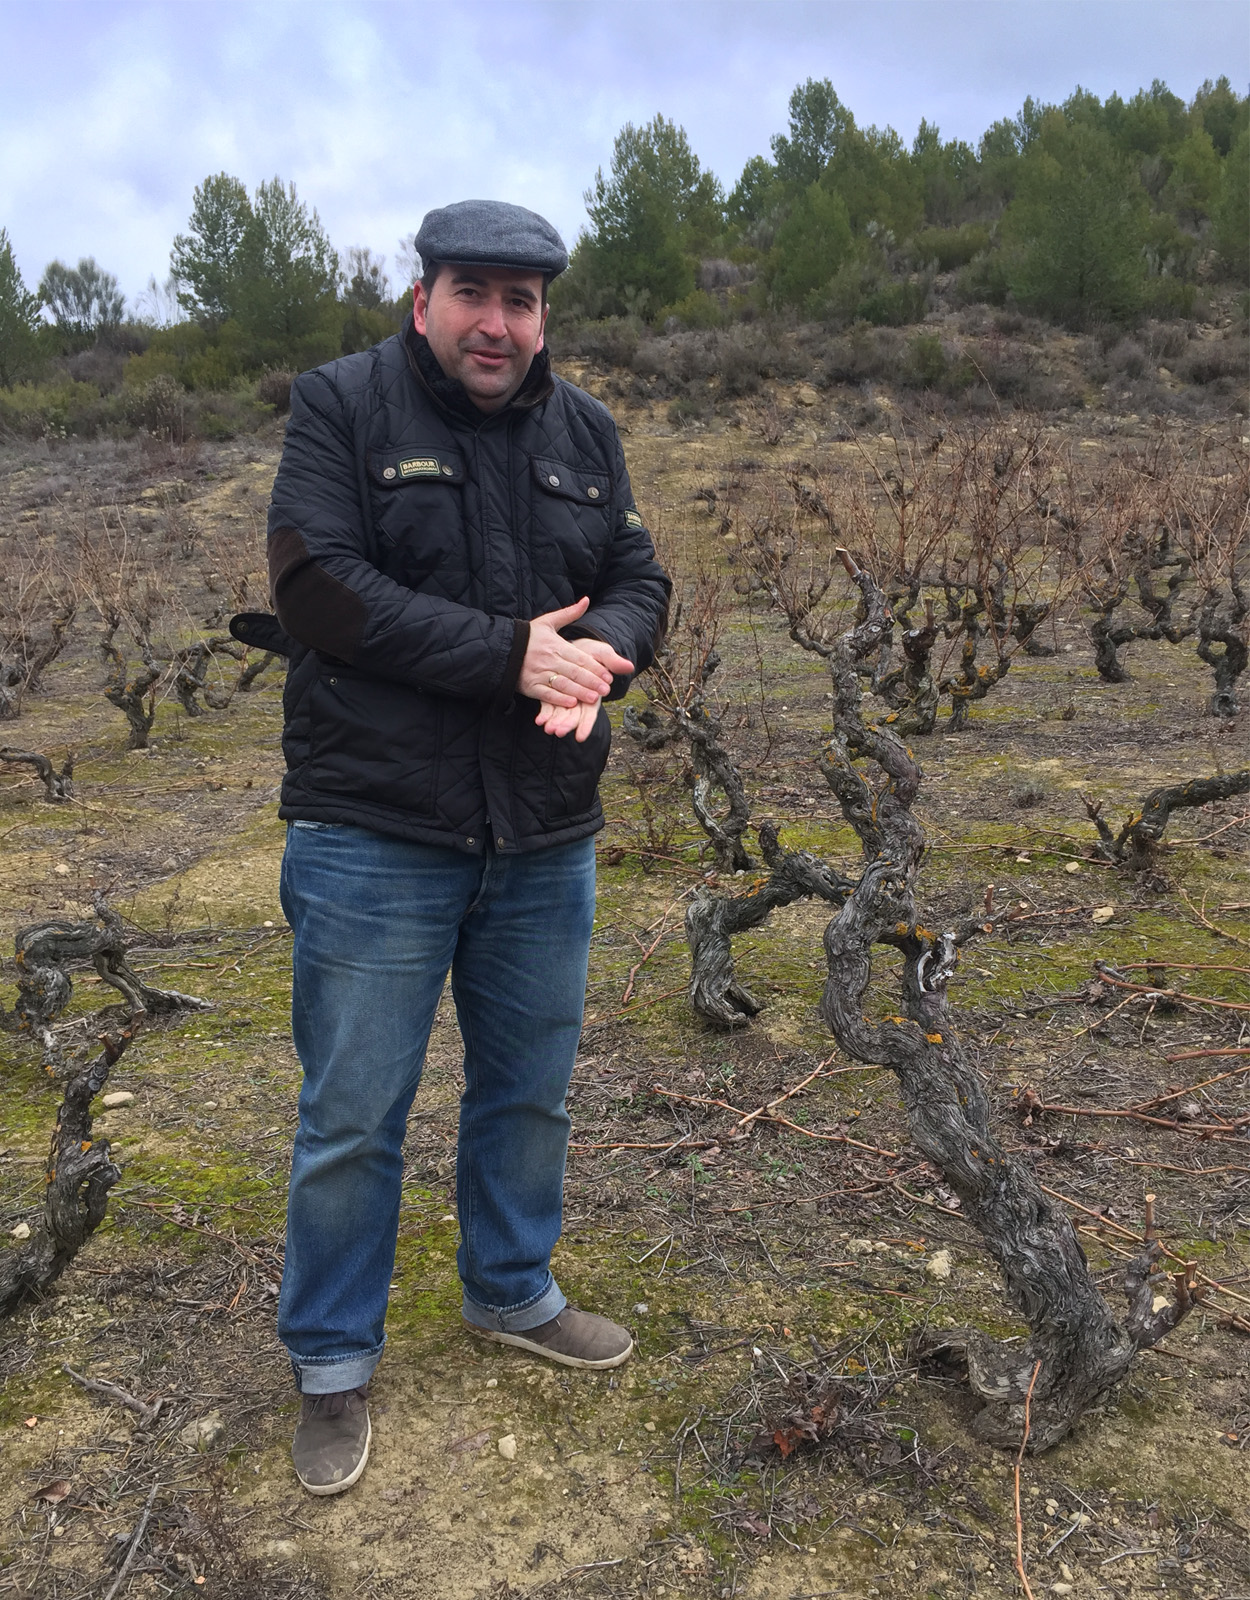 Roberto Ijalba, winemaker at Bodegas Santalba